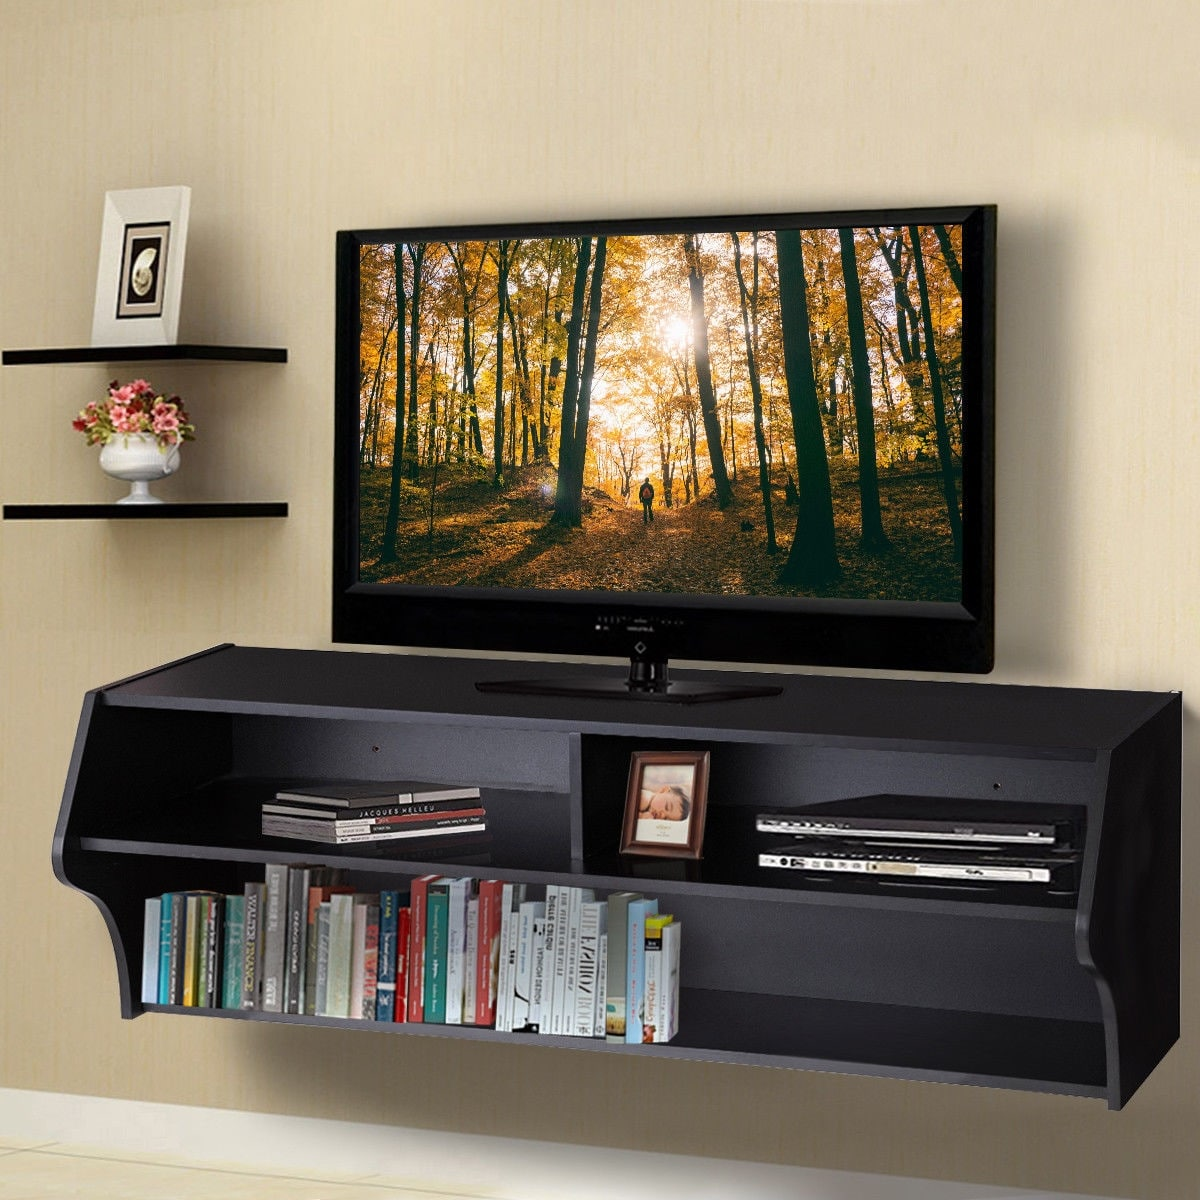 48 5 Wall Mounted Tv Console Floating Audio Video Cabinet With 2 Shelves New